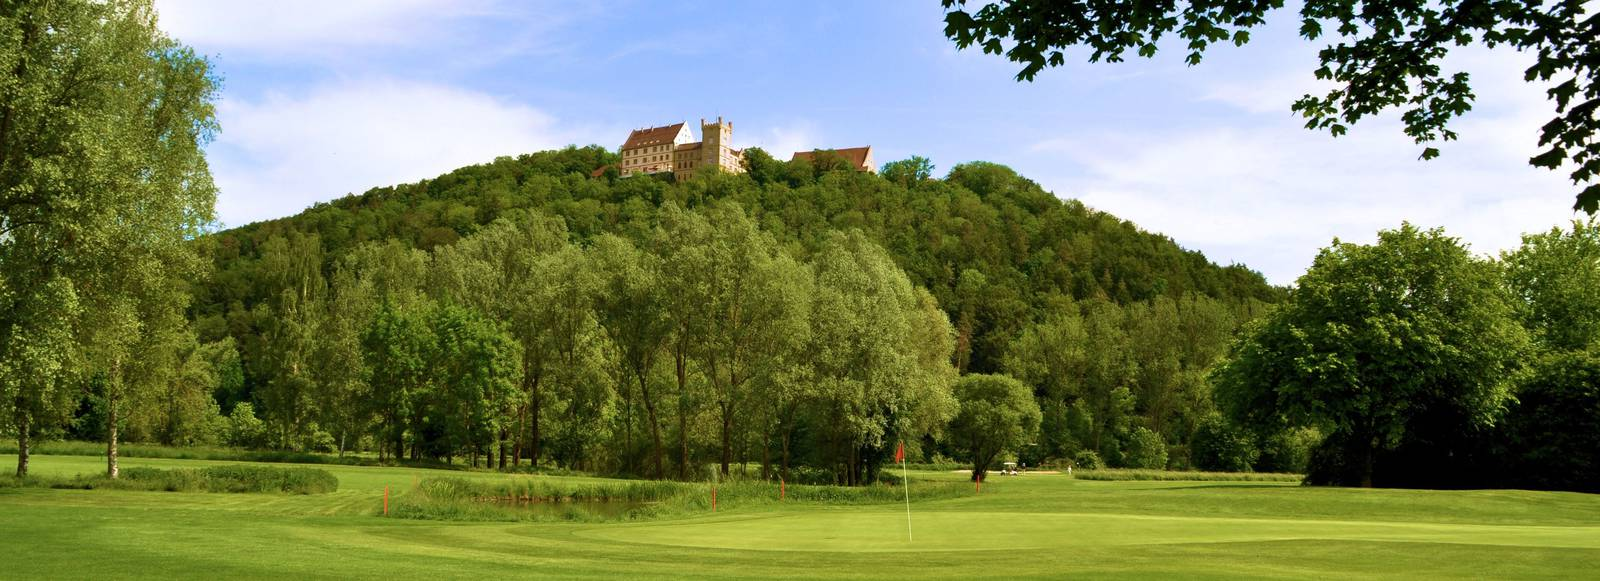 Overview of golf course named Gc Schloss Weitenburg